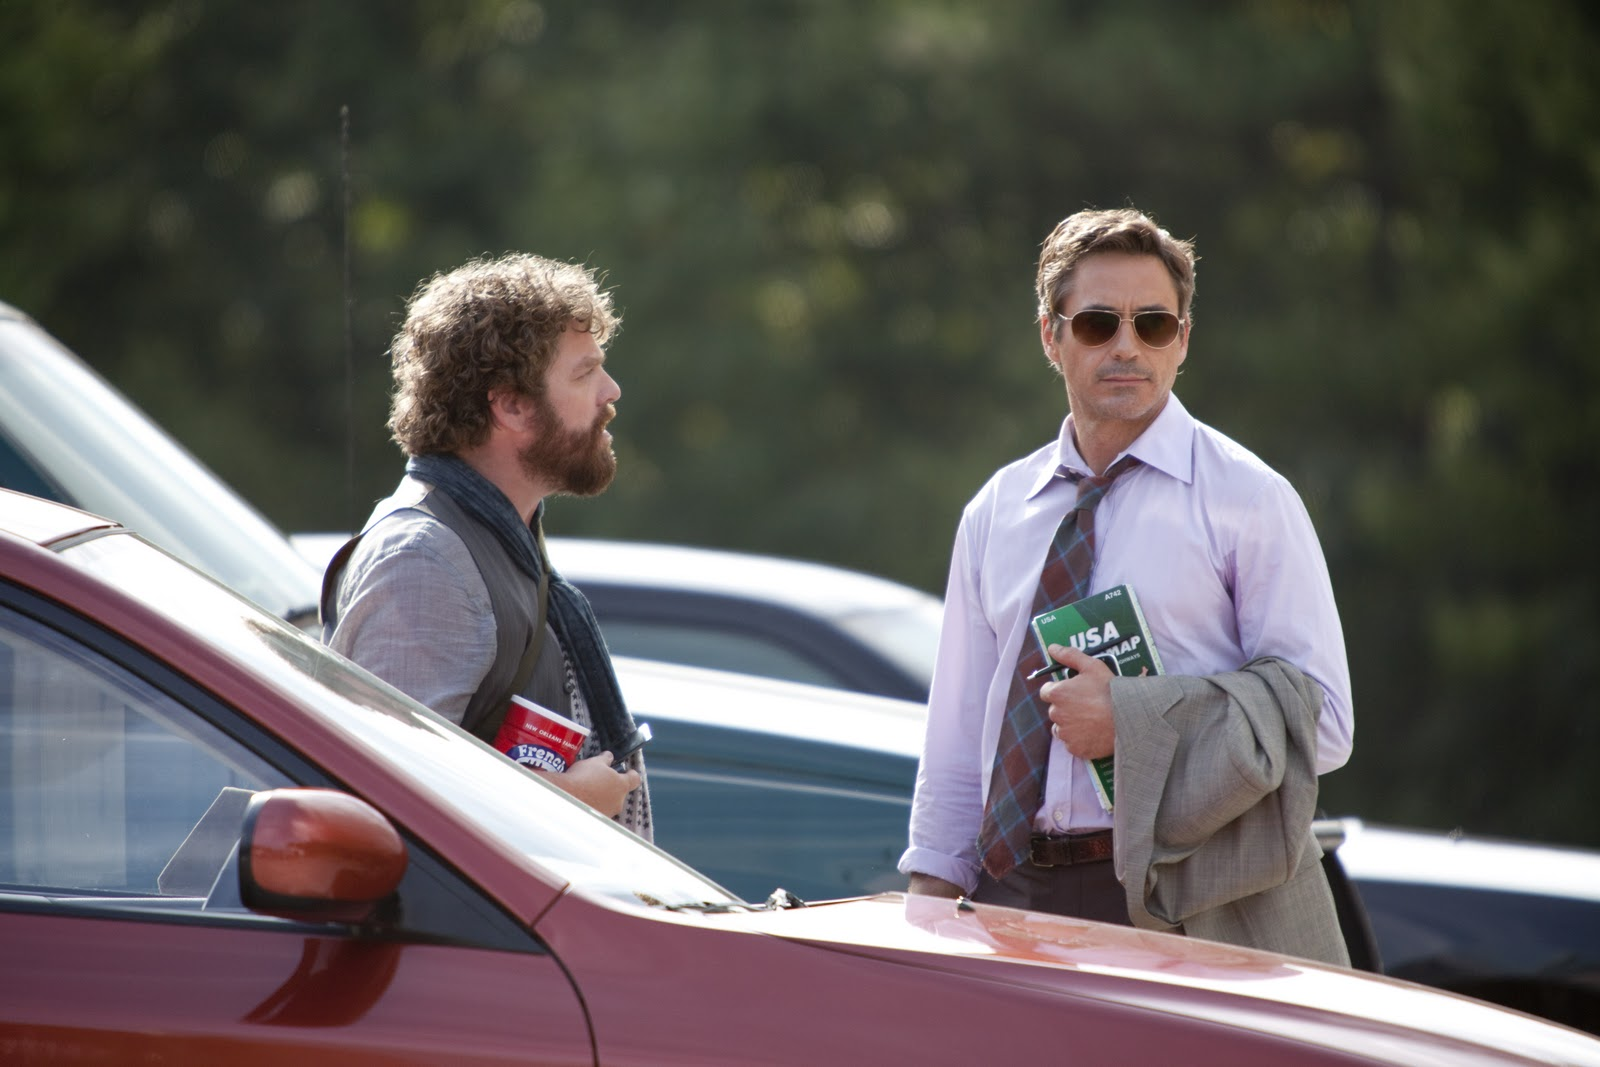 http://3.bp.blogspot.com/_w6GL1DCUVfk/TG9fuFsdBUI/AAAAAAAAFS0/L472CEOGCn0/s1600/Due_Date_movie_image_Robert_Downey_Jr_Zach_Galifianakis-2.jpg